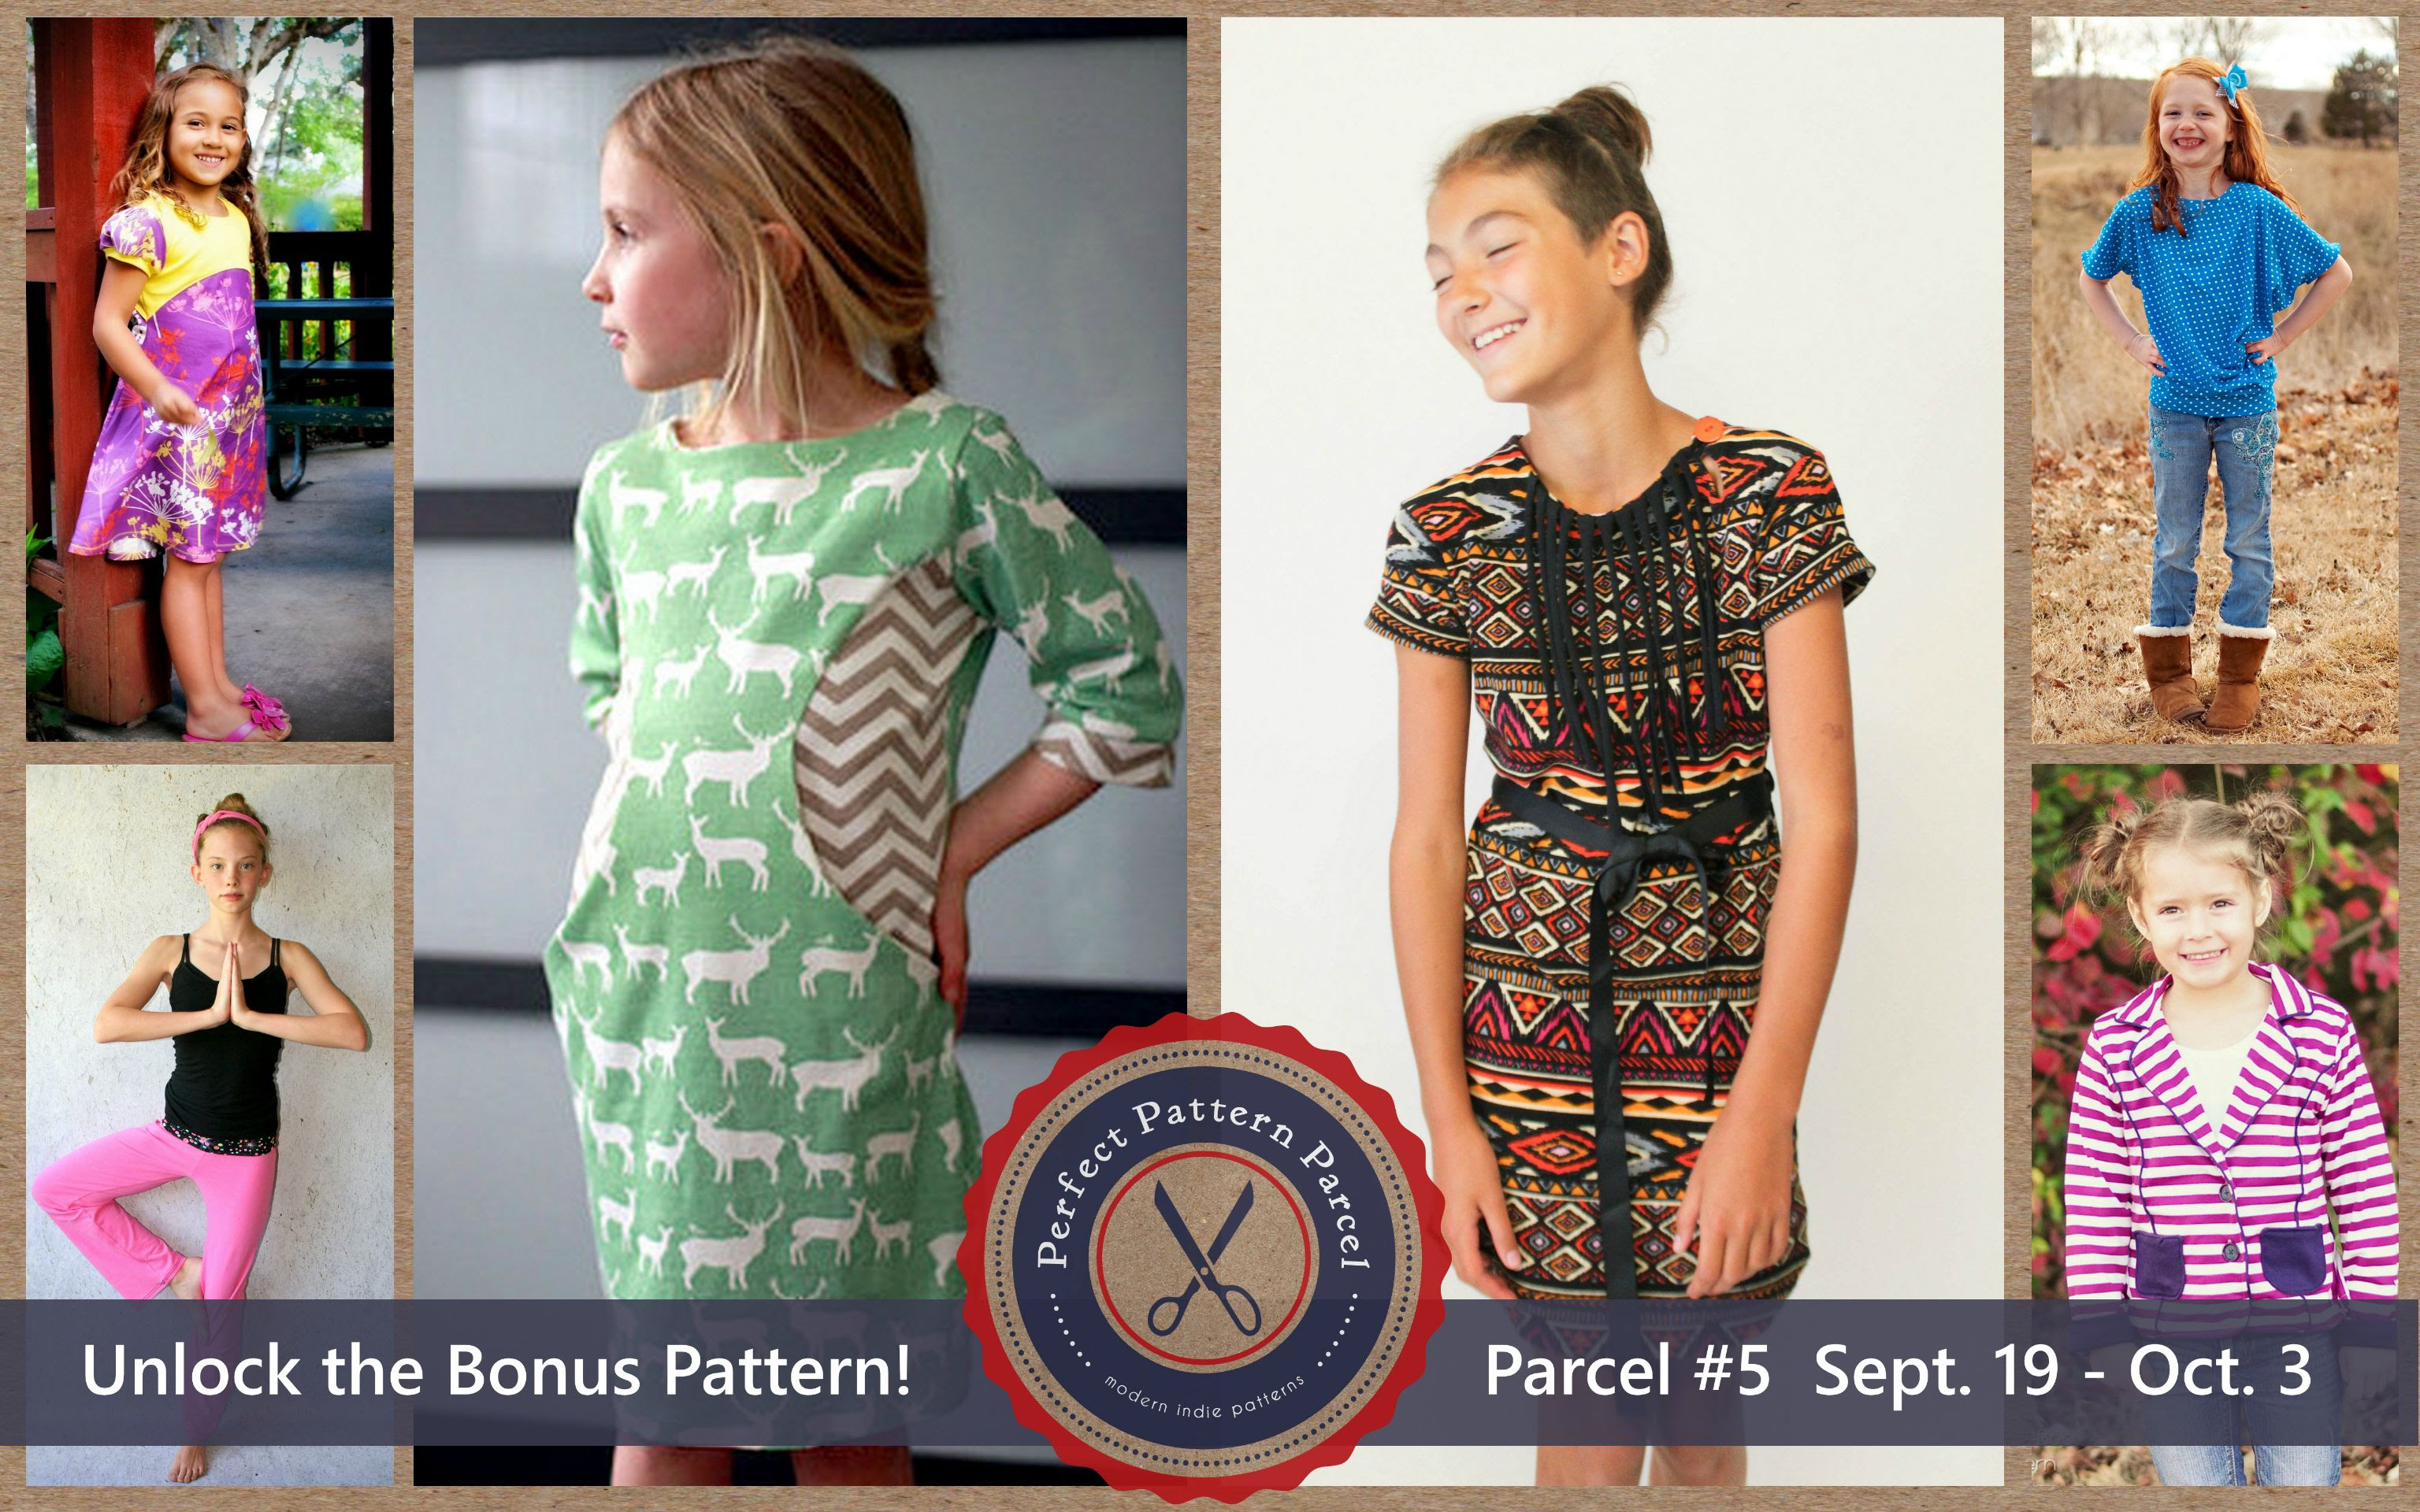 Pattern Parcel #5: Choose your own price and support DonorsChoose. Win/win